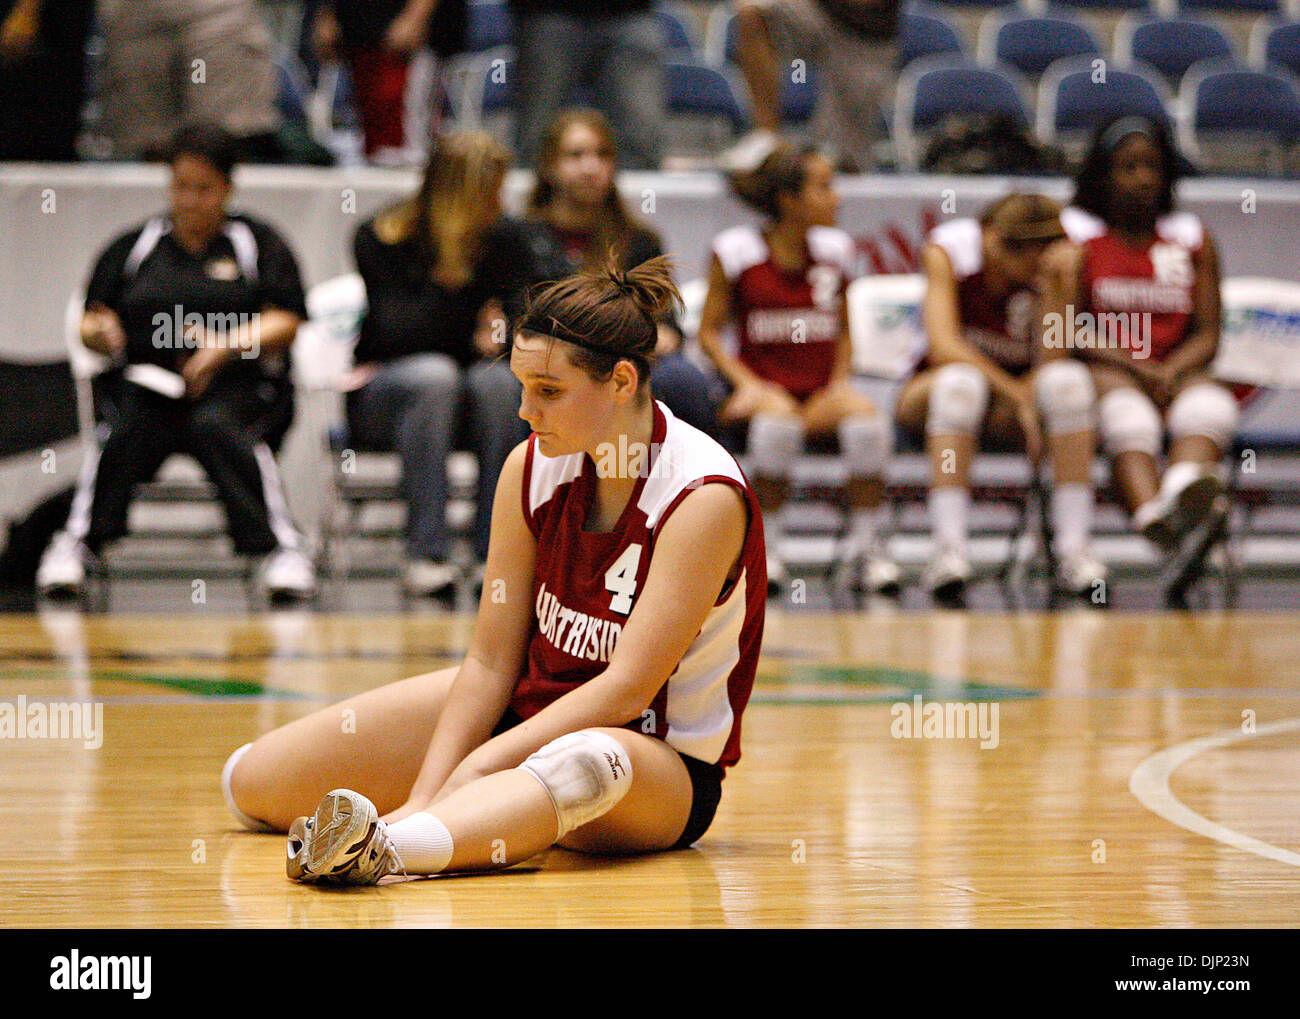 BRIAN CASSELLA   |   Times (11/19/2008 LAKELAND)  Countryside's Madison Truluck reacts to the loss. PREP VOLLEYBALL - Countryside vs. Timber Creek in a Class 6A volleyball semifinal at the Lakeland Center on Wednesday  (Credit Image: © St. Petersburg Times/ZUMA Press) - Stock Image